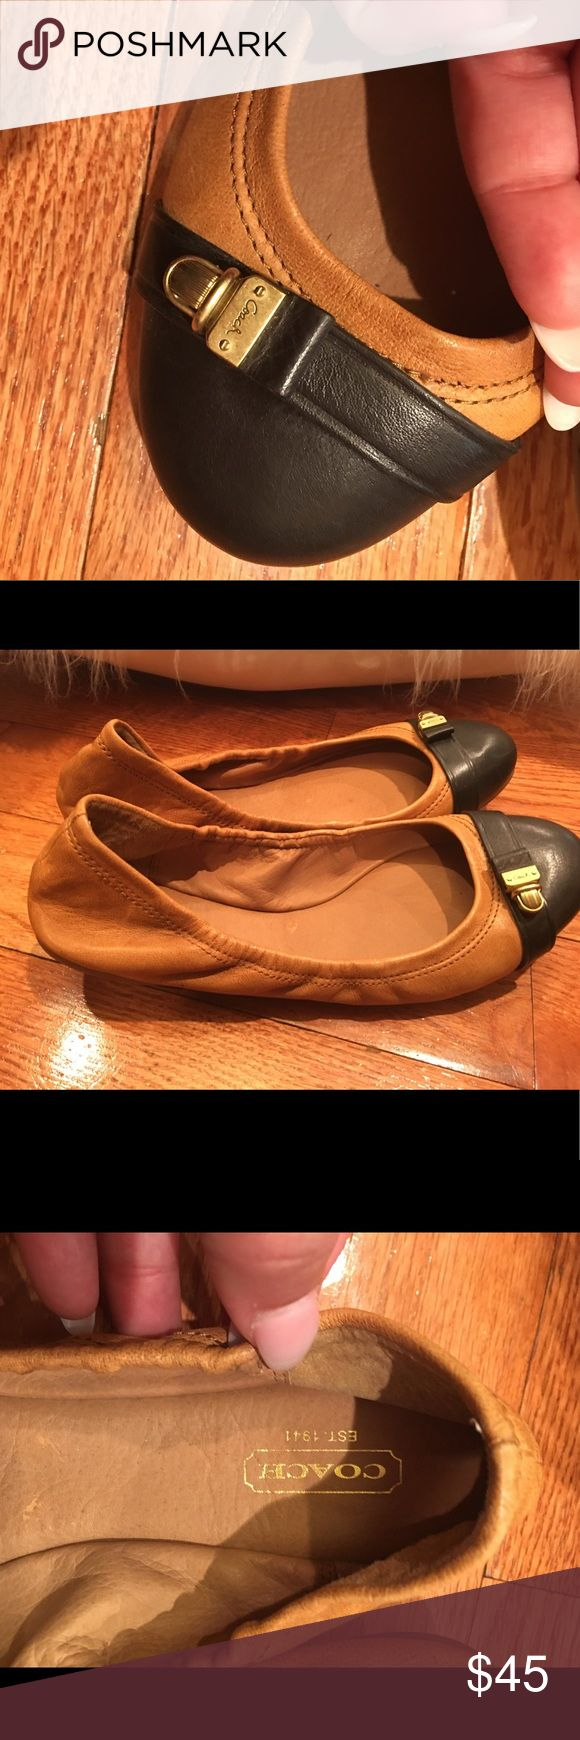 ✨Coach Flats✨leather Coach ballet like new Coach Flats Shoes Women leather Coach ballet flats Black Brown Size 9B like new Coach Shoes Flats & Loafers